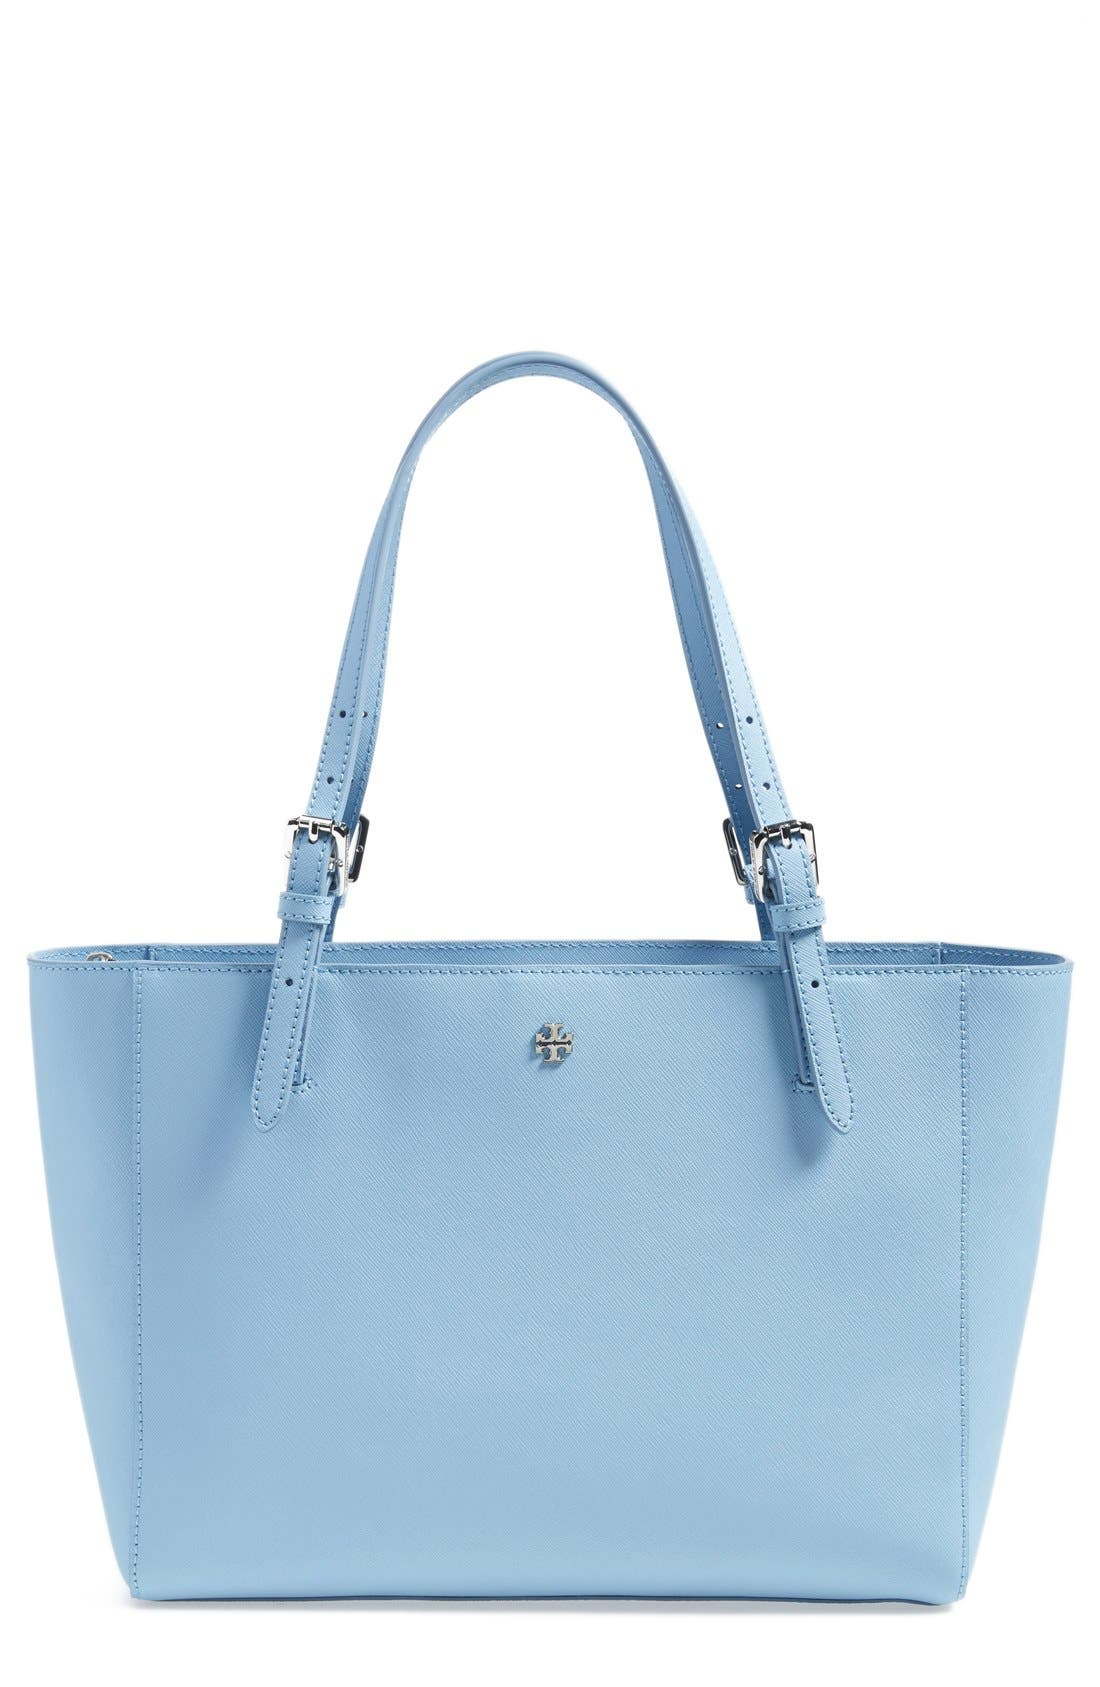 'Small York' Saffiano Leather Buckle Tote,                             Main thumbnail 9, color,